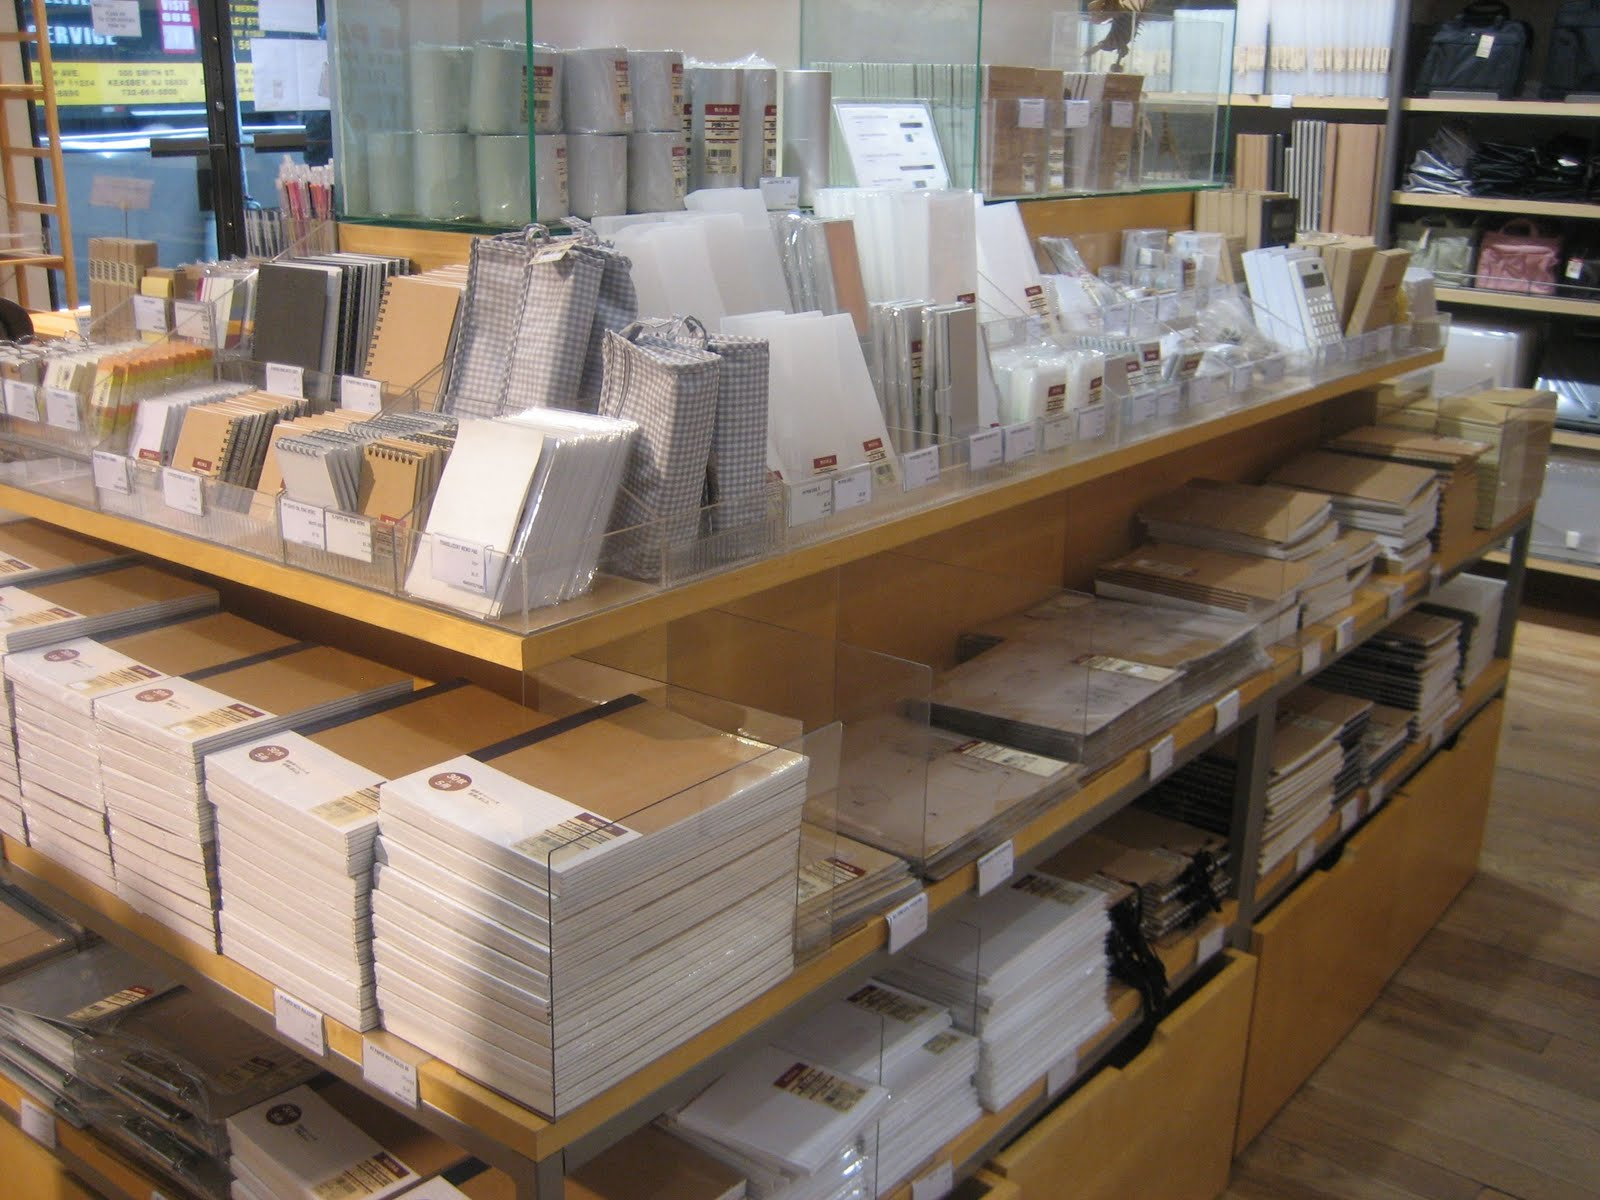 MINISO going places despite Muji copycat charge